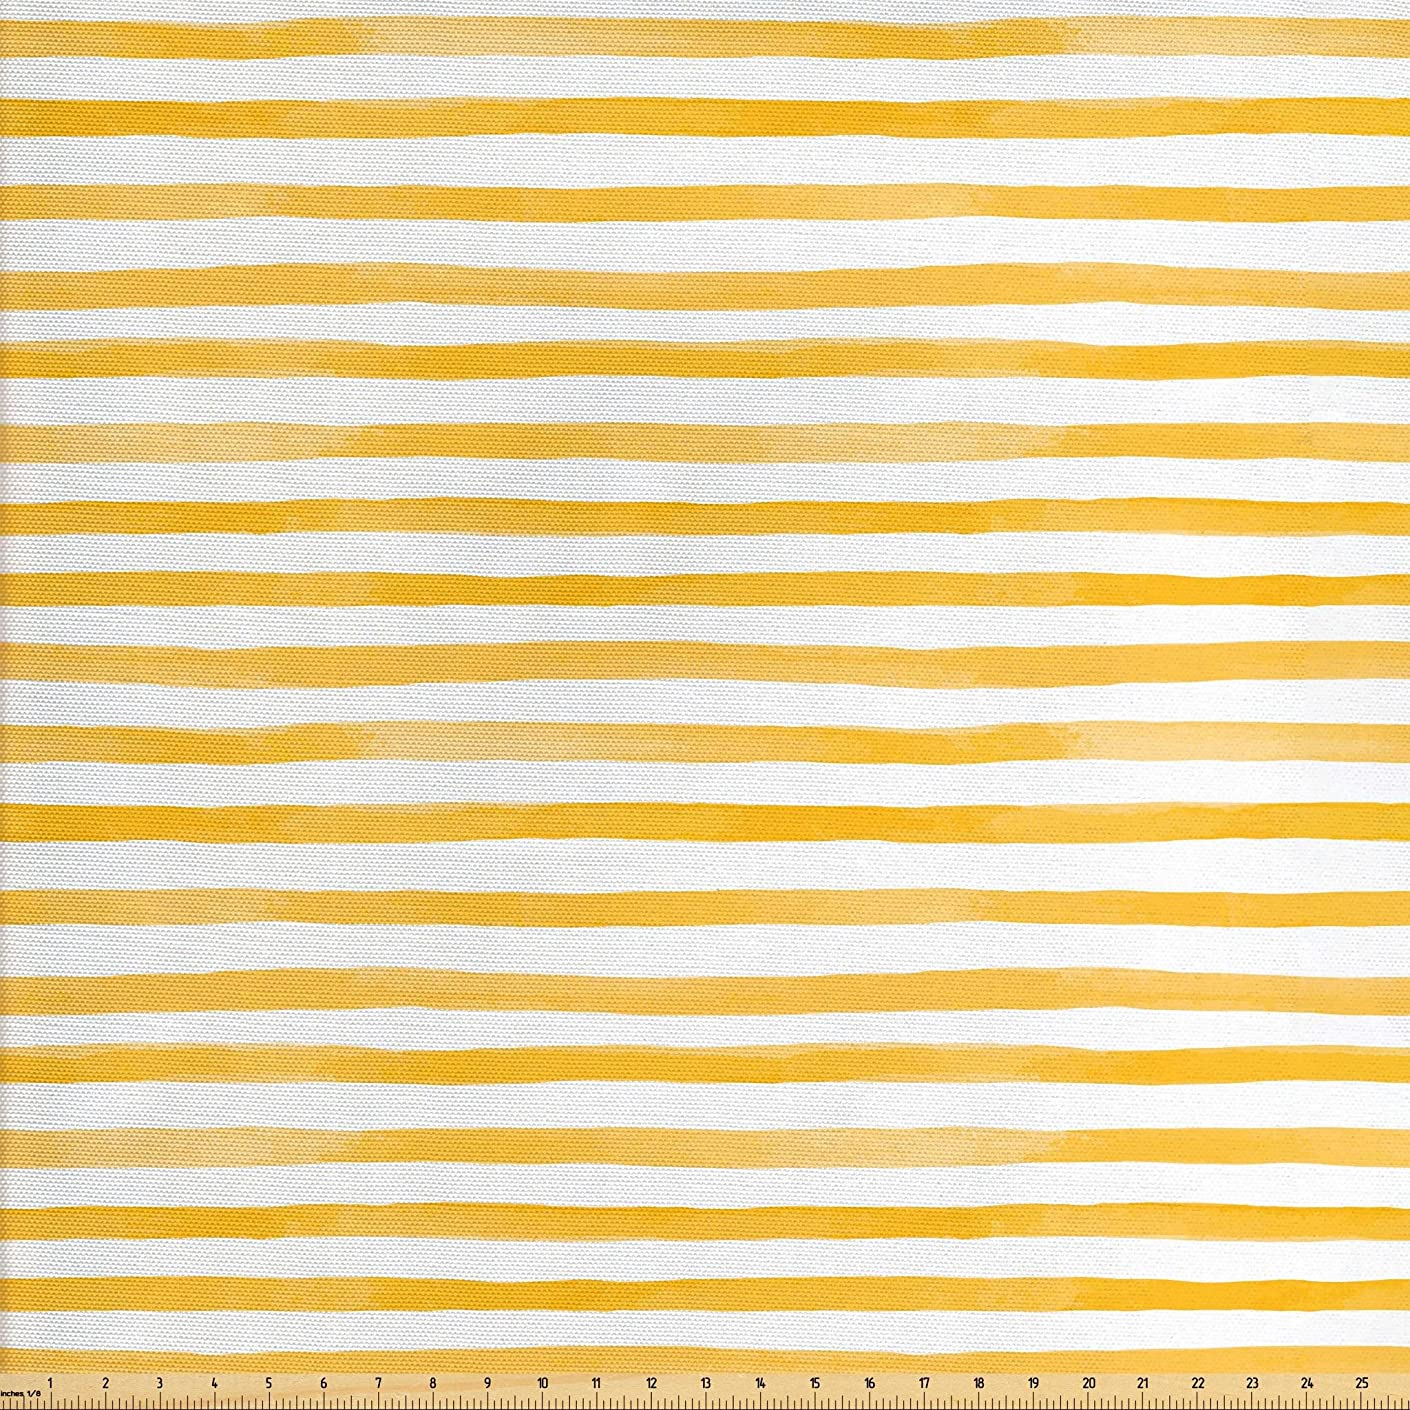 Lunarable Striped Fabric by The Yard, Watercolor Style Uneven Stripes Pattern with Yellow Shades Pastel Tone Print, Decorative Fabric for Upholstery and Home Accents, 2 Yards, Mustard White